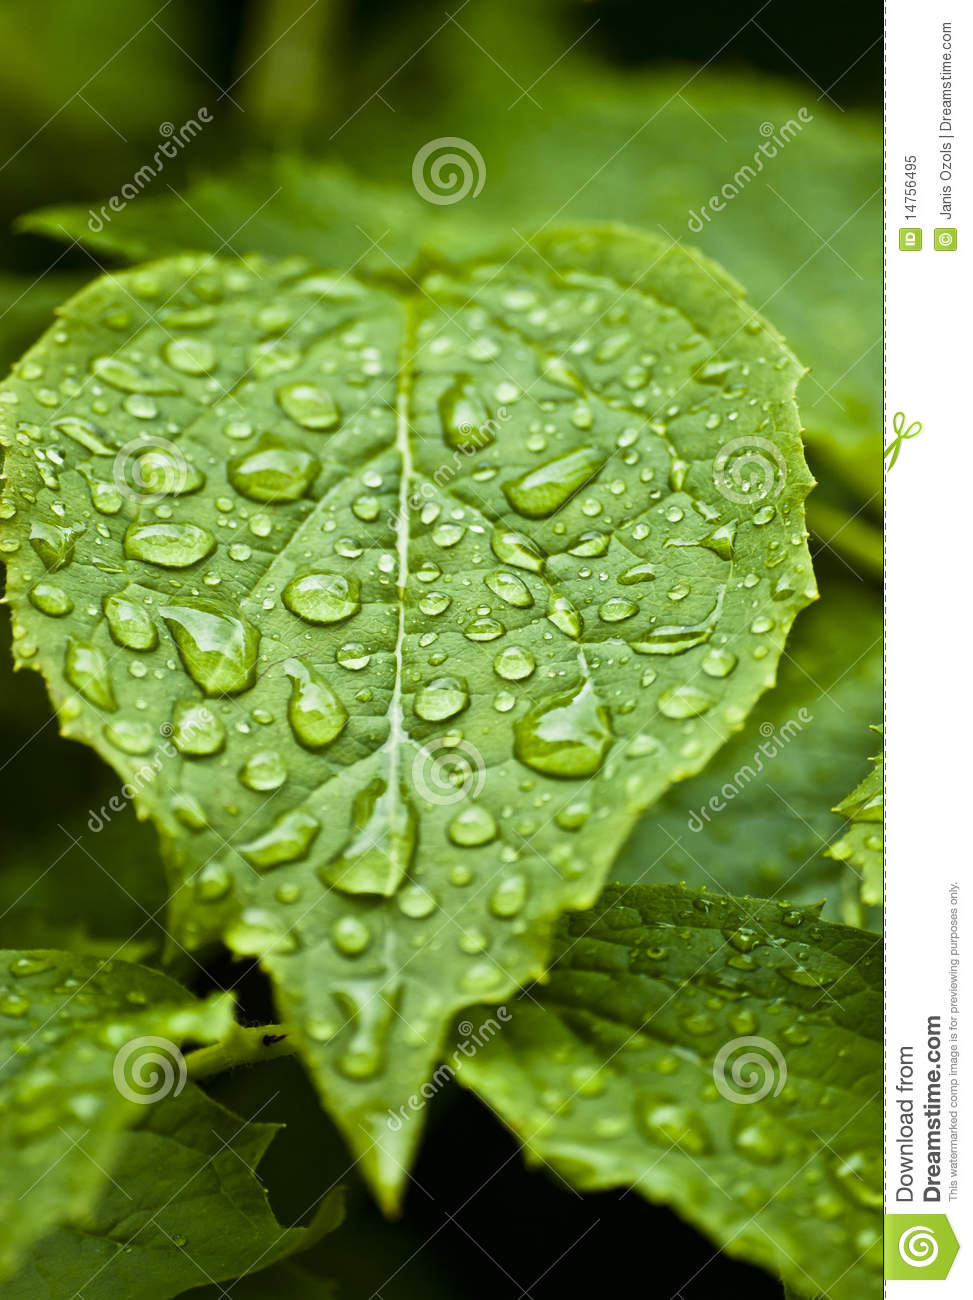 Car Animation Wallpapers Download Leaf With Rain Drops Royalty Free Stock Photo Image